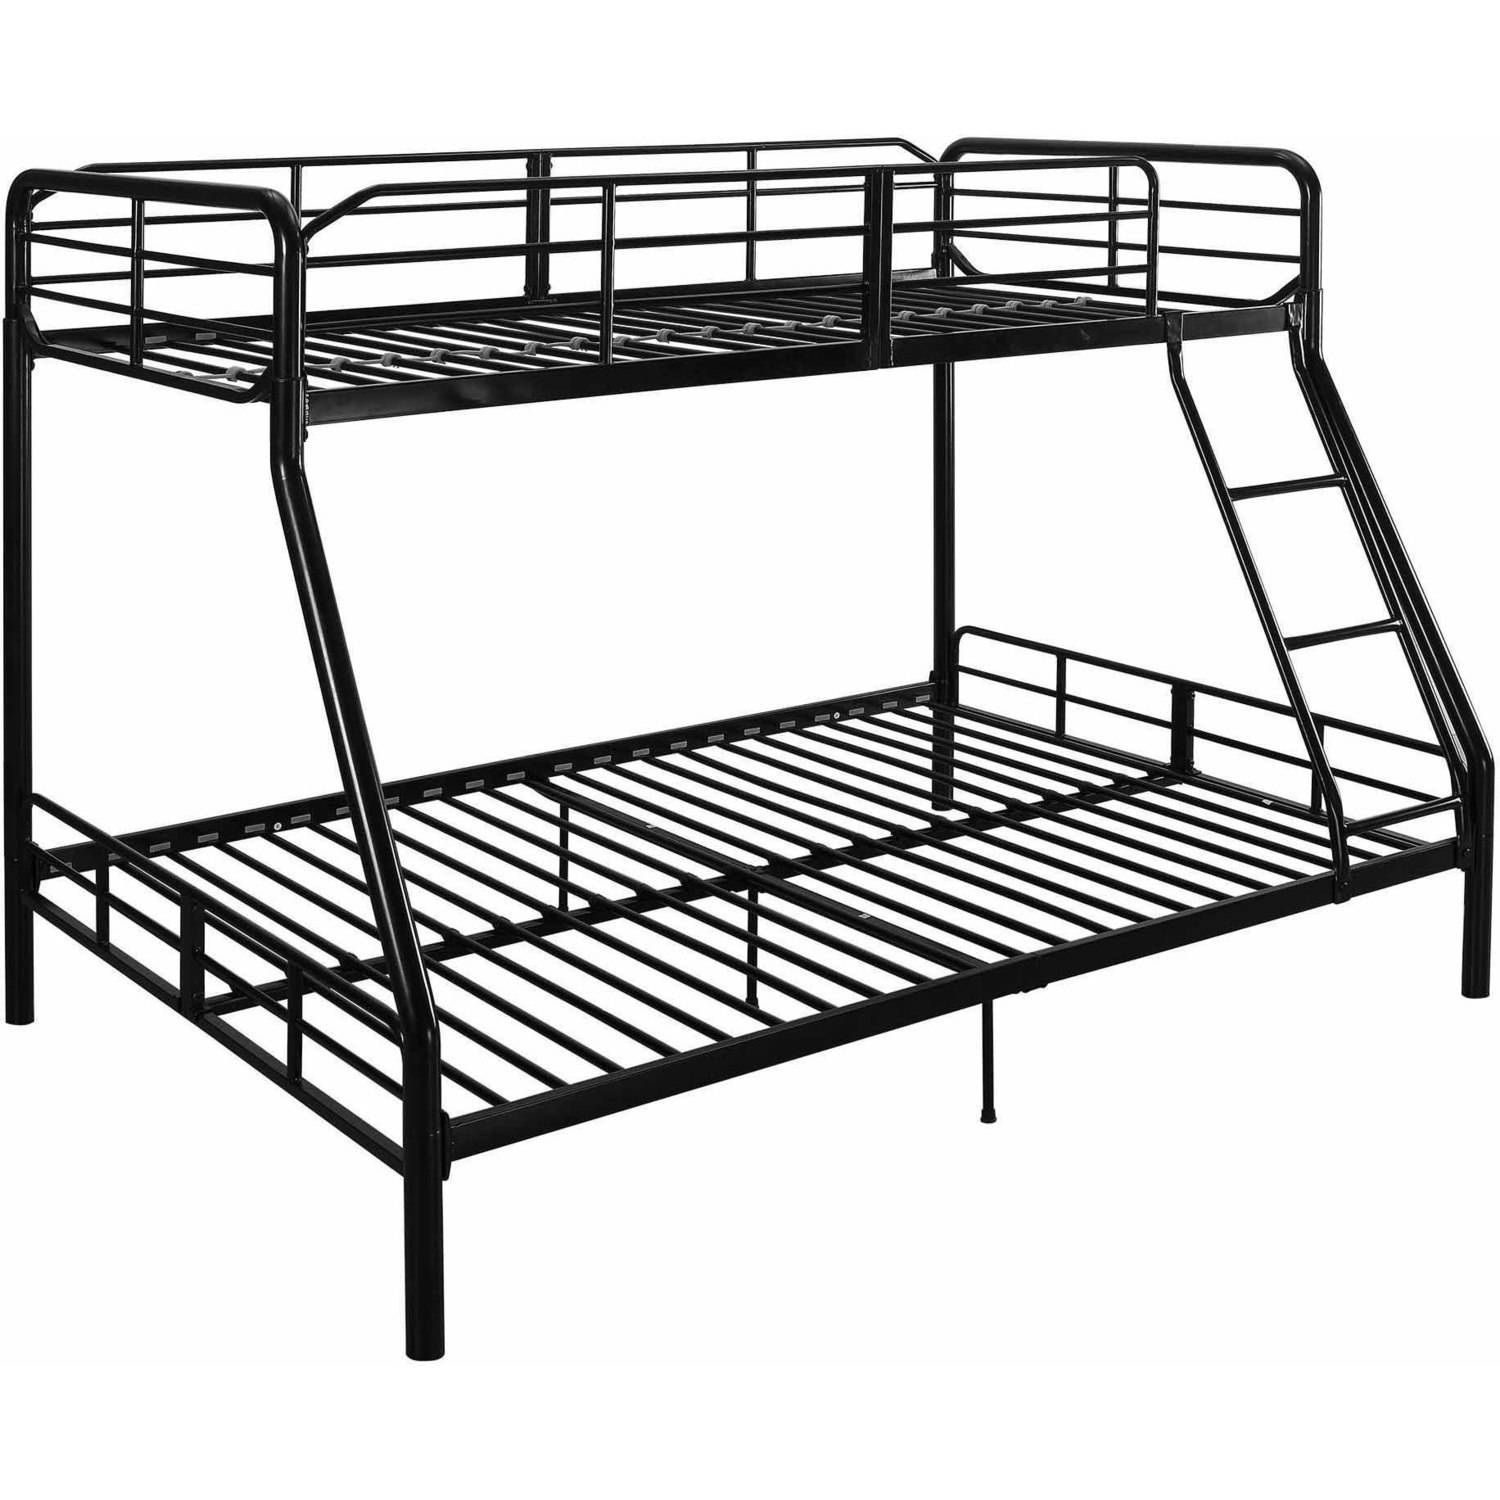 70 Dorel Twin Over Full Metal Bunk Bed Assembly Instructions